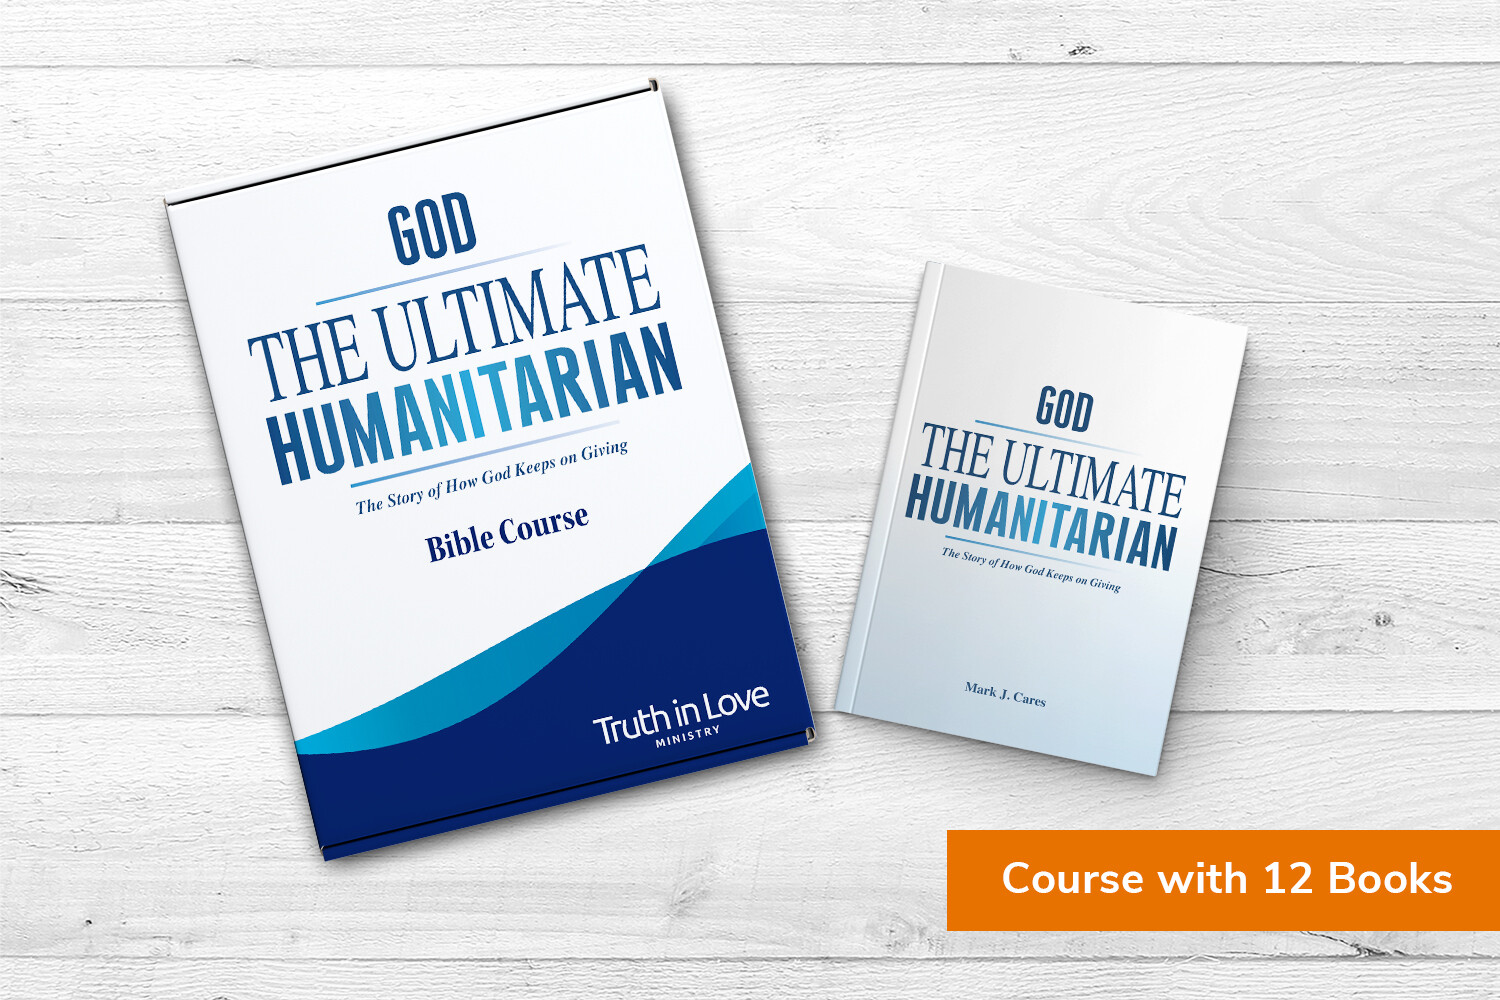 Package #2 - God - The Ultimate Humanitarian Bible Course